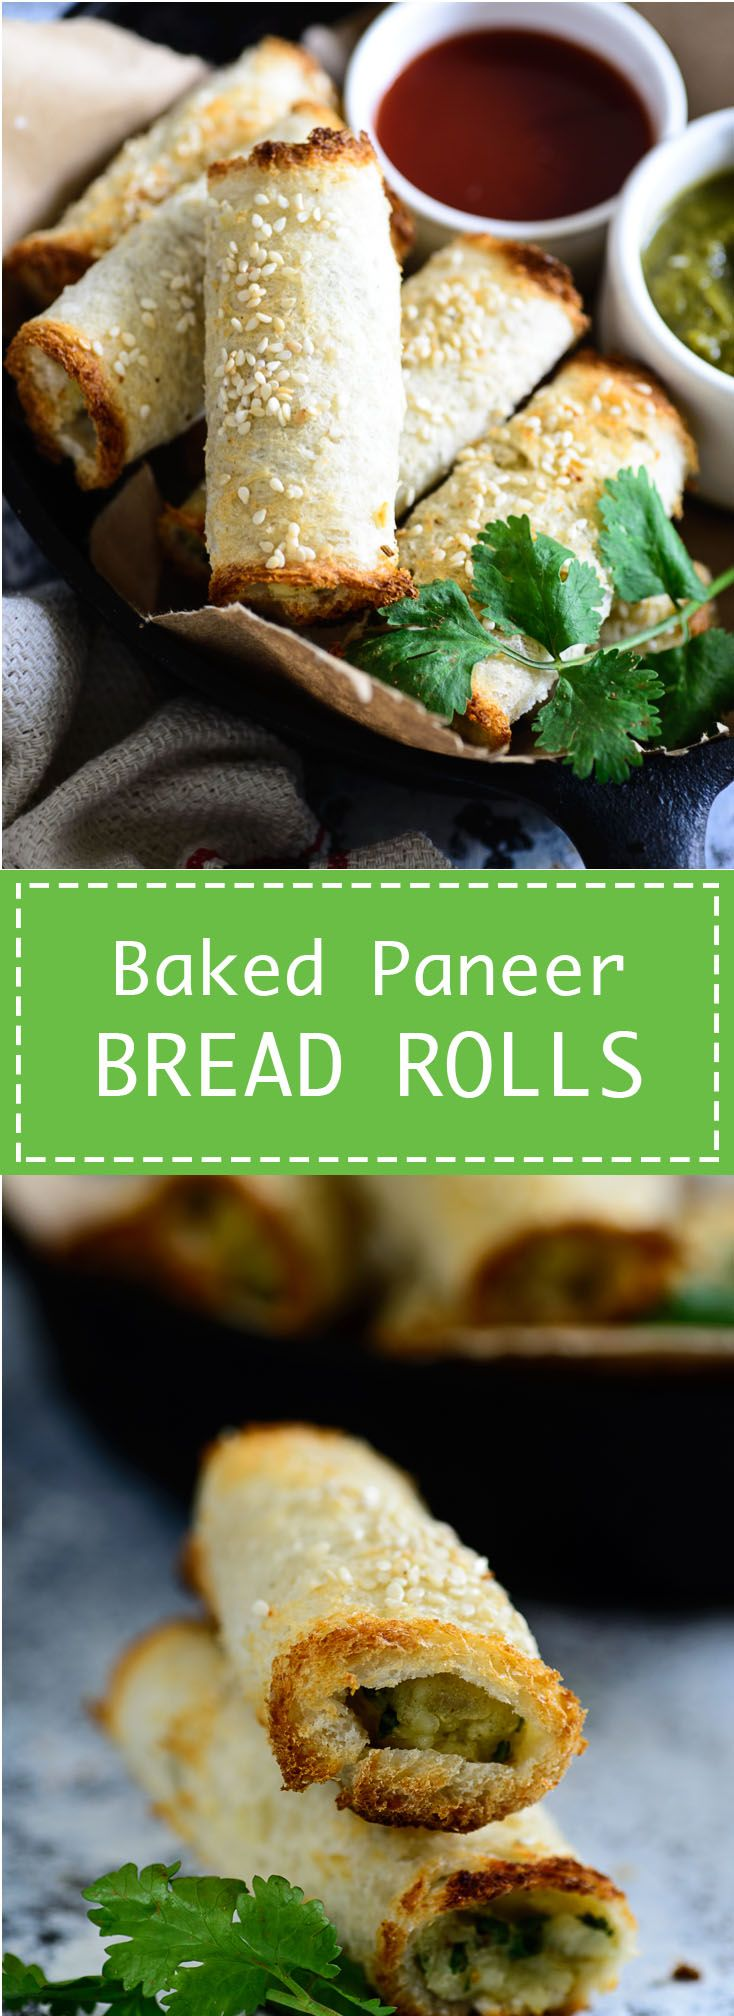 Baked Paneer Bread Rolls. Healthy and delicious snacks filled with Indian cottage cheese and potato filling. Food photography and styling by Neha Mathur (Baking Bread Rolls)